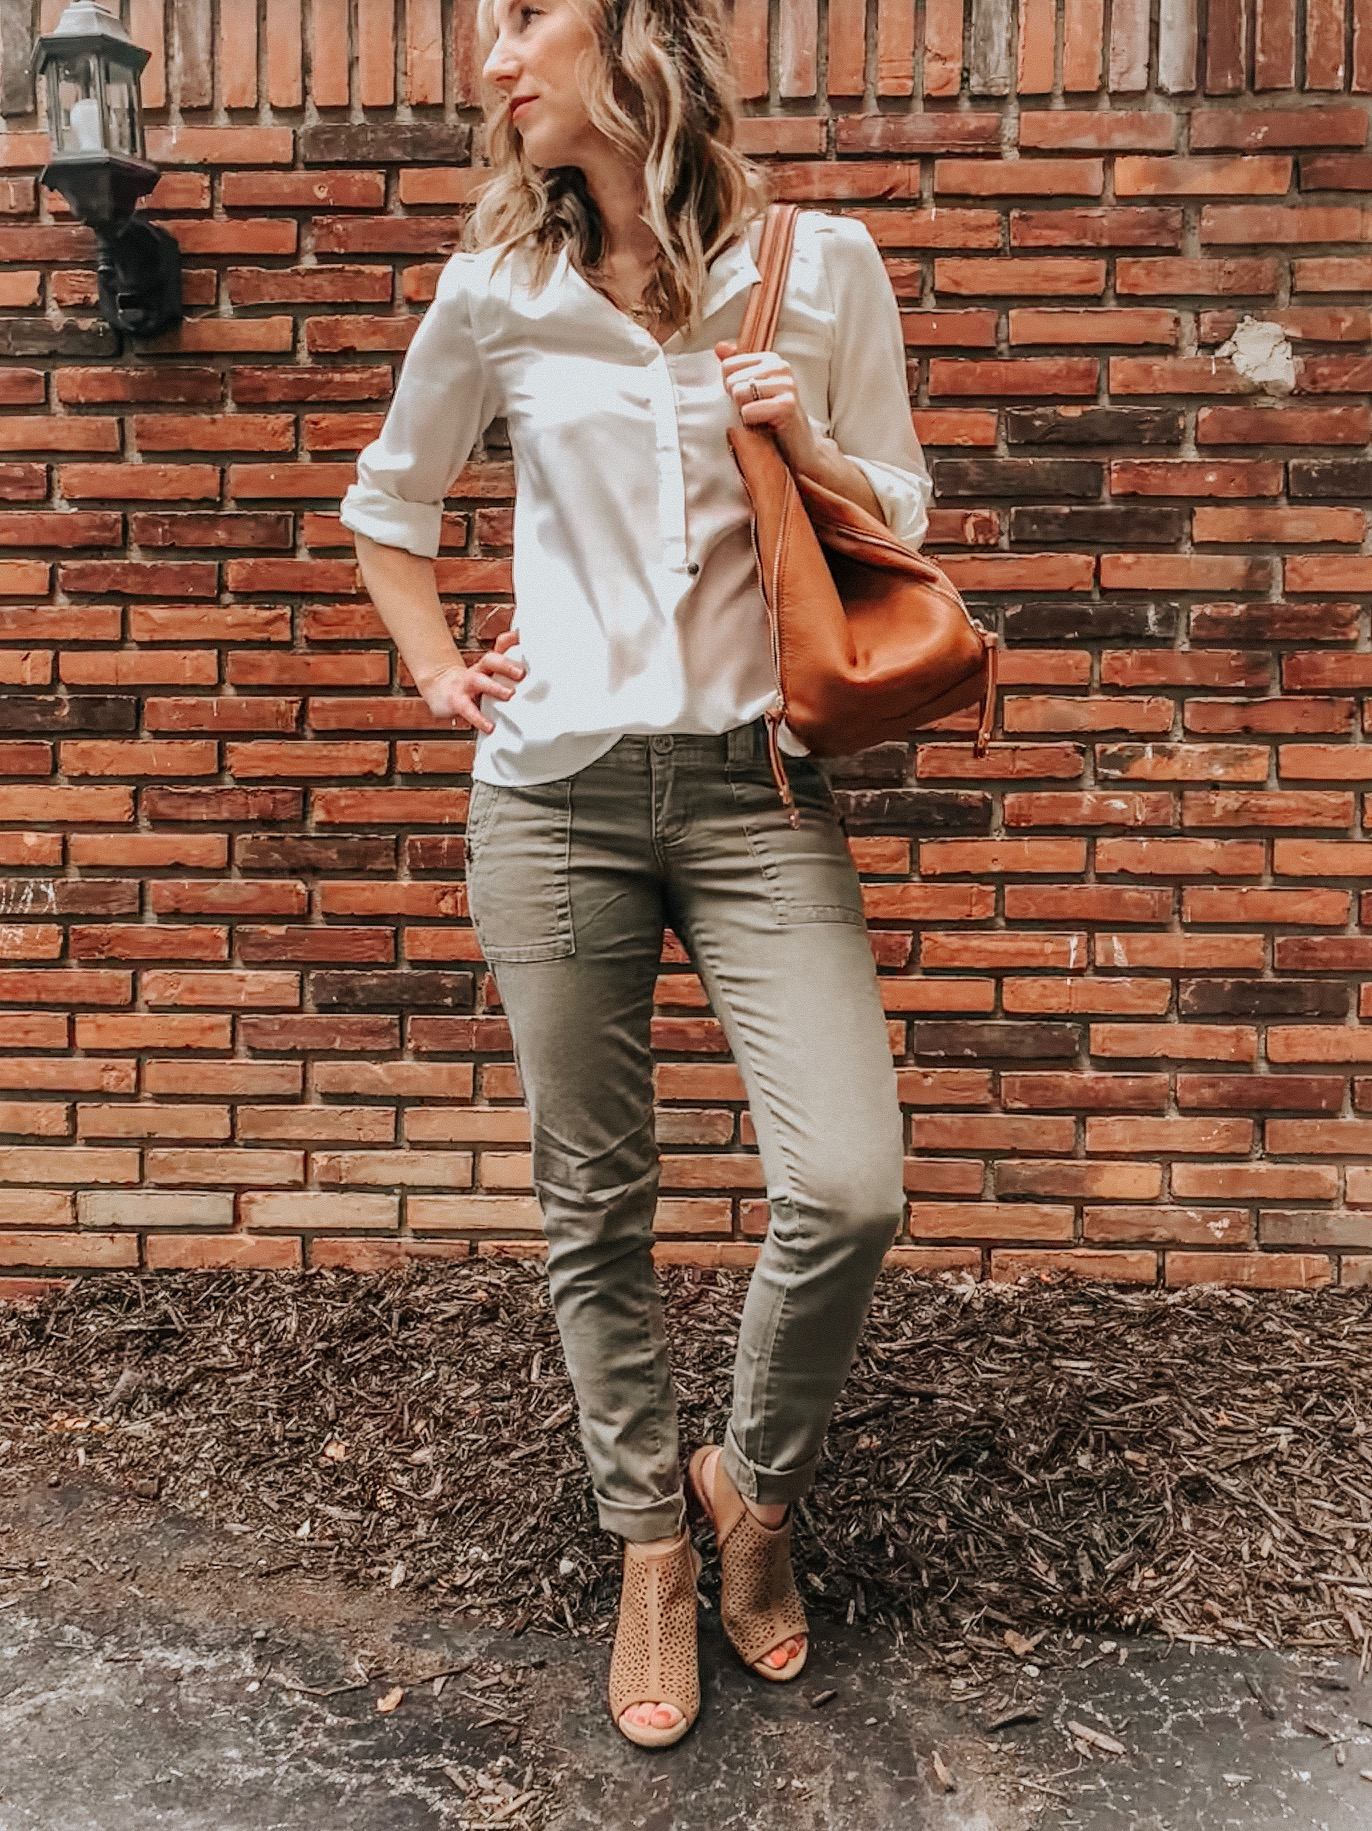 Daily Splendor - August Instagram Roundup #casualllook #fashion #fallfashion